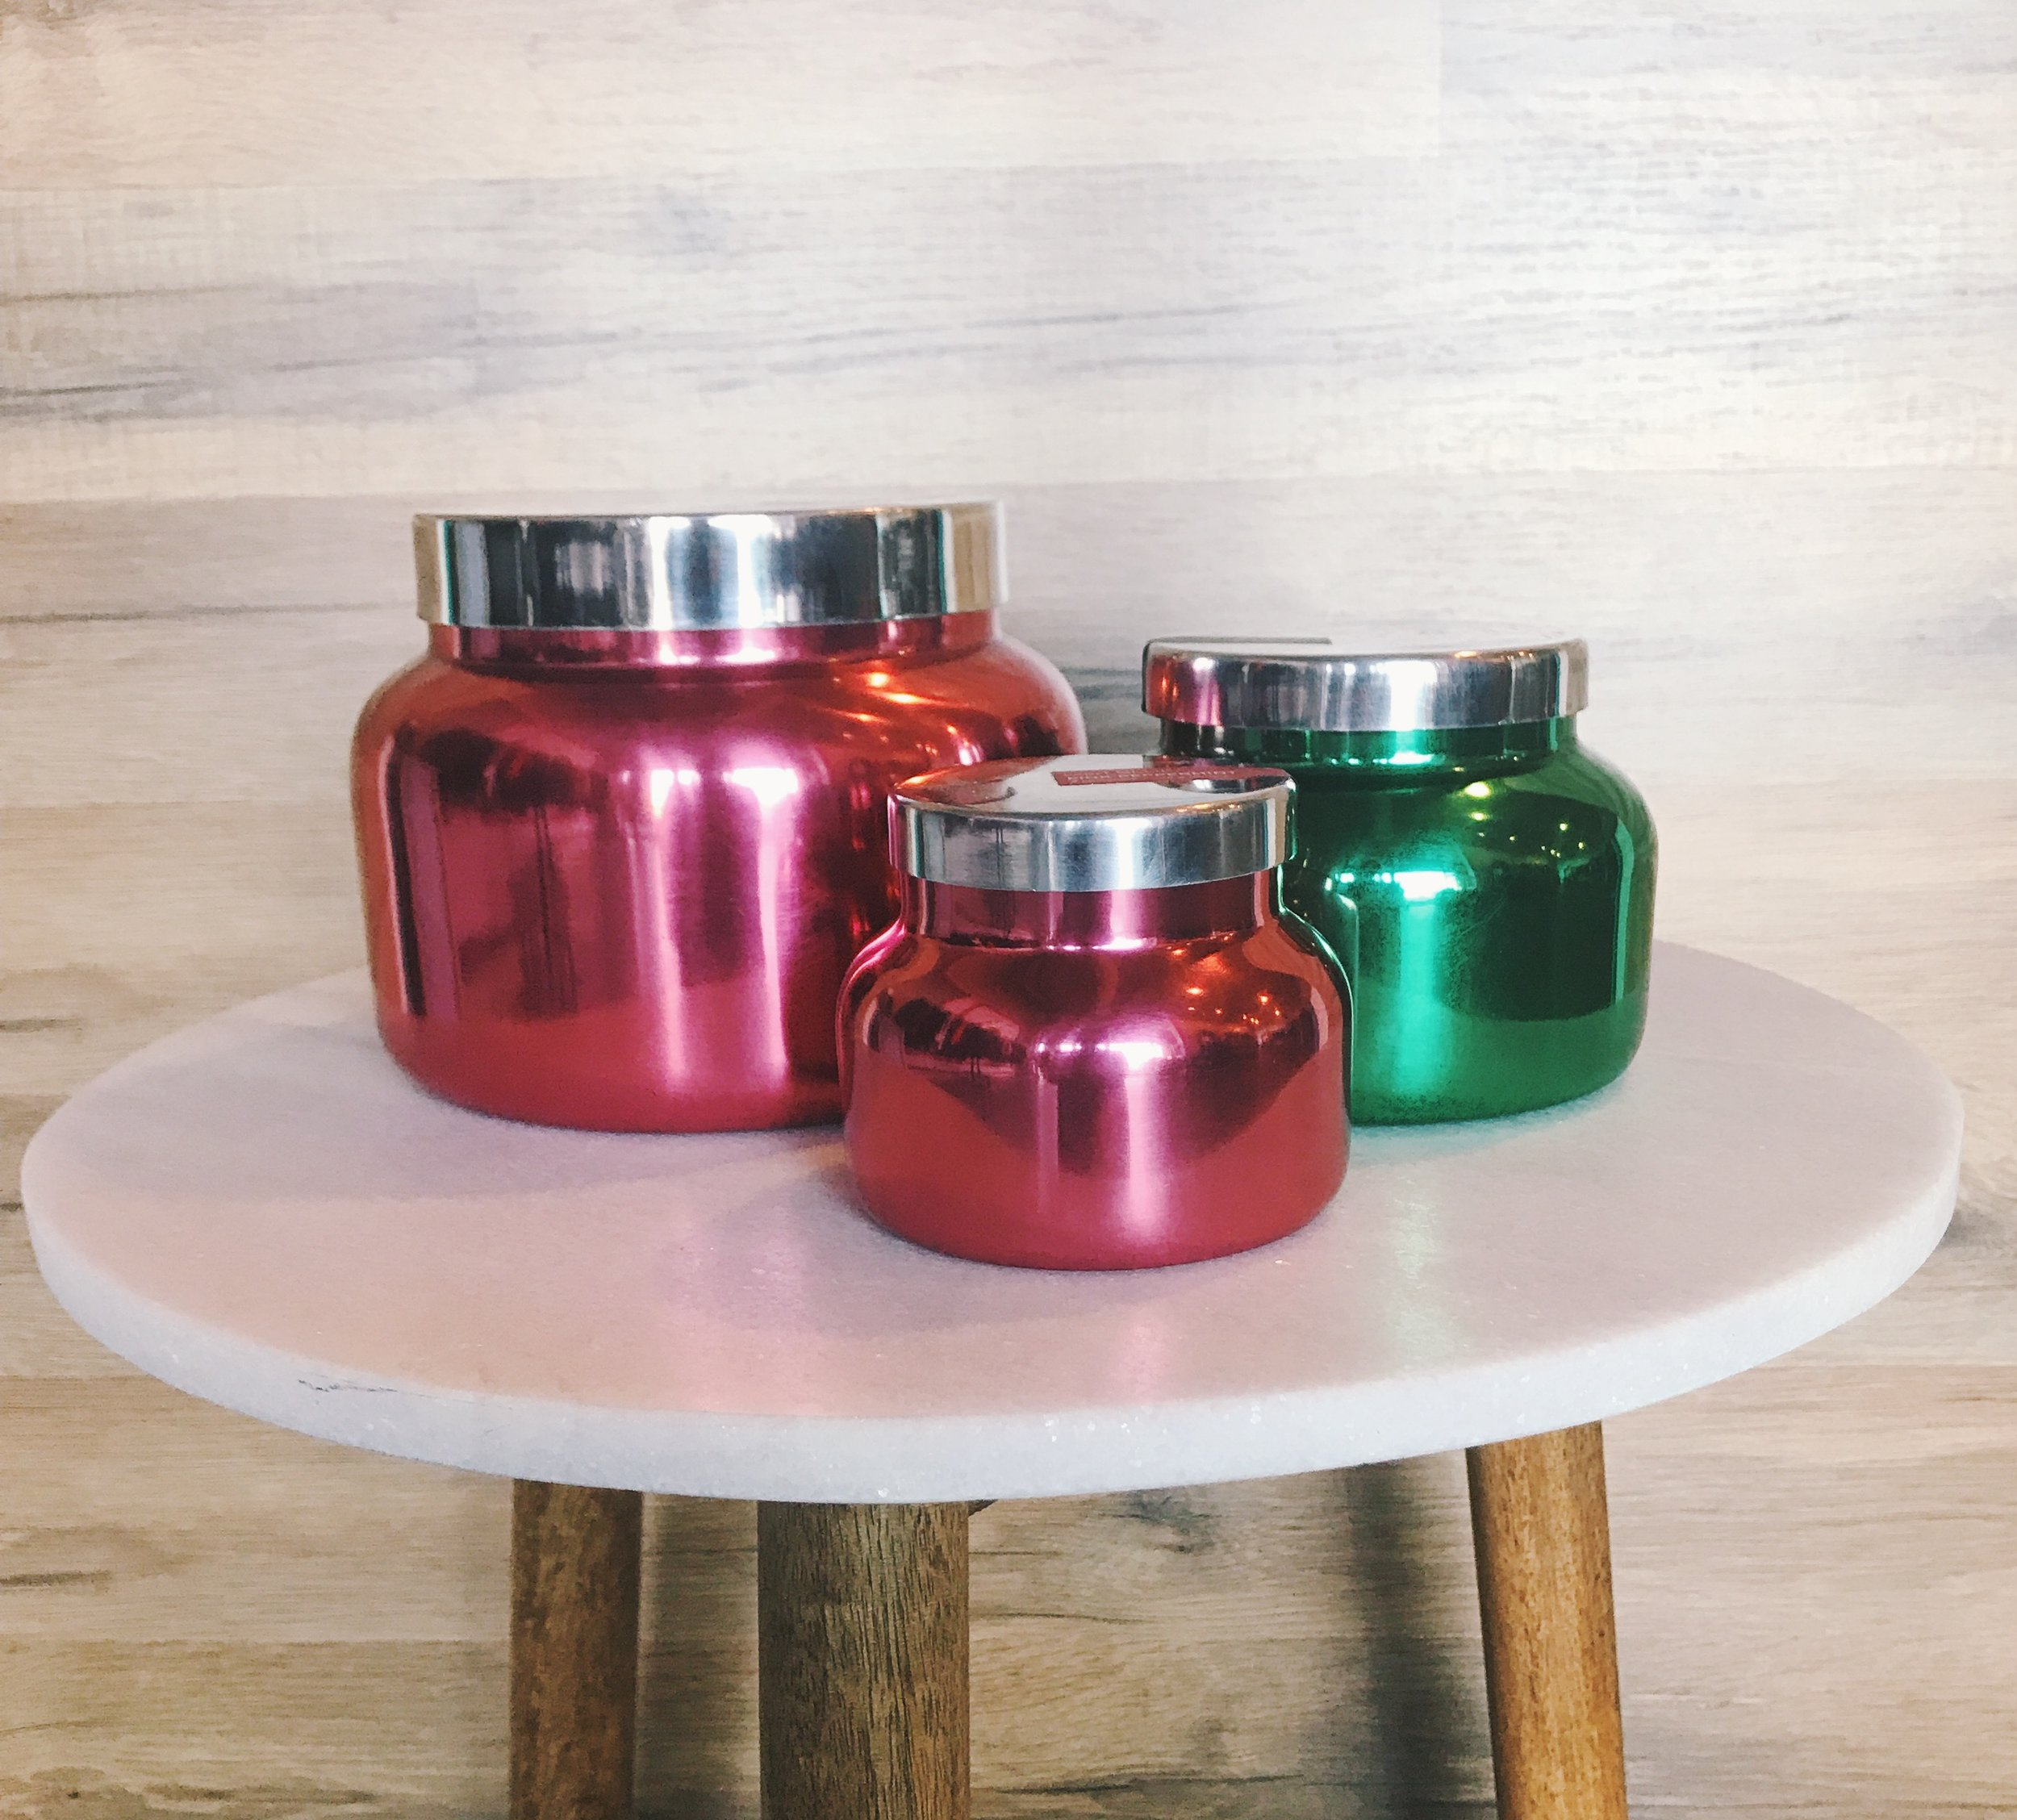 Holiday Smells - The one thing that's better than holiday décor is the smells! Holiday candles are by far one of the best (and easiest) gifts to give someone on your list. We have a ton of colors to chose from that would be ideal for Men and Women.Small: $19.50Medium: $28Large: $78